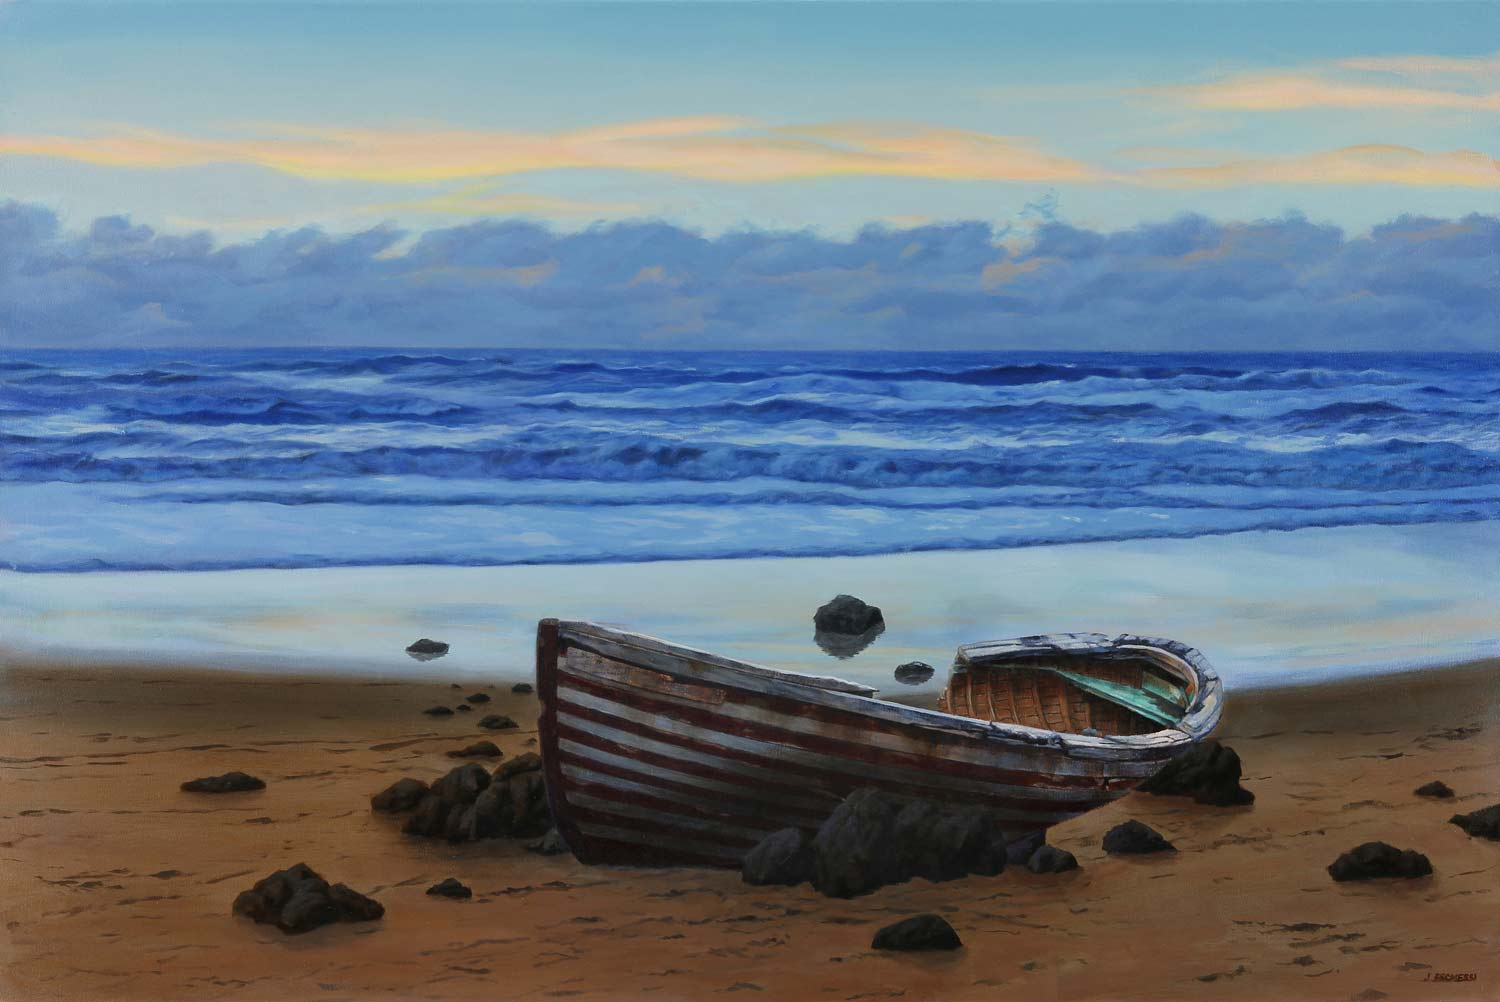 Boat Wreck on the Beach, painting by Promessi